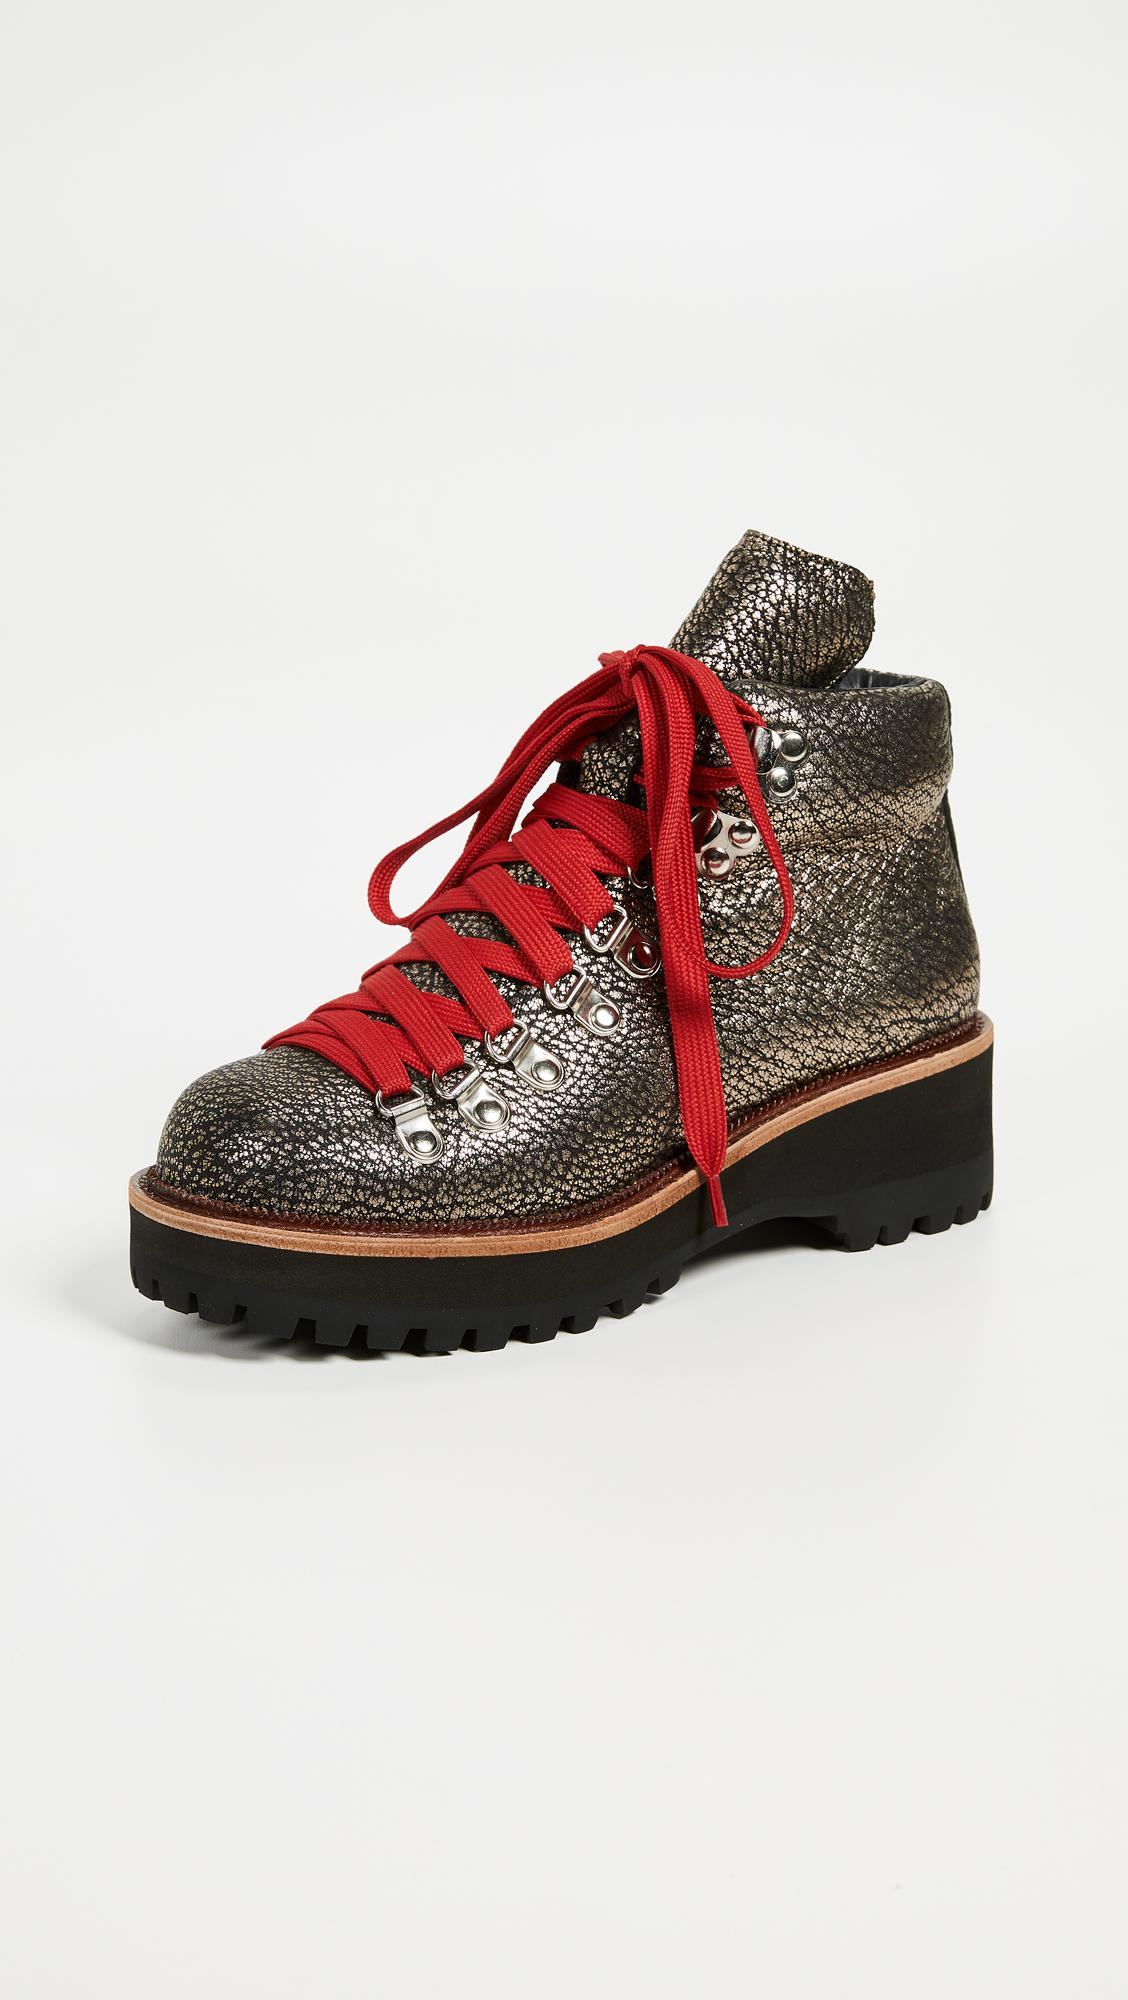 Jeffrey Campbell Explorer Wedge Hiking Booties In Red Lyst